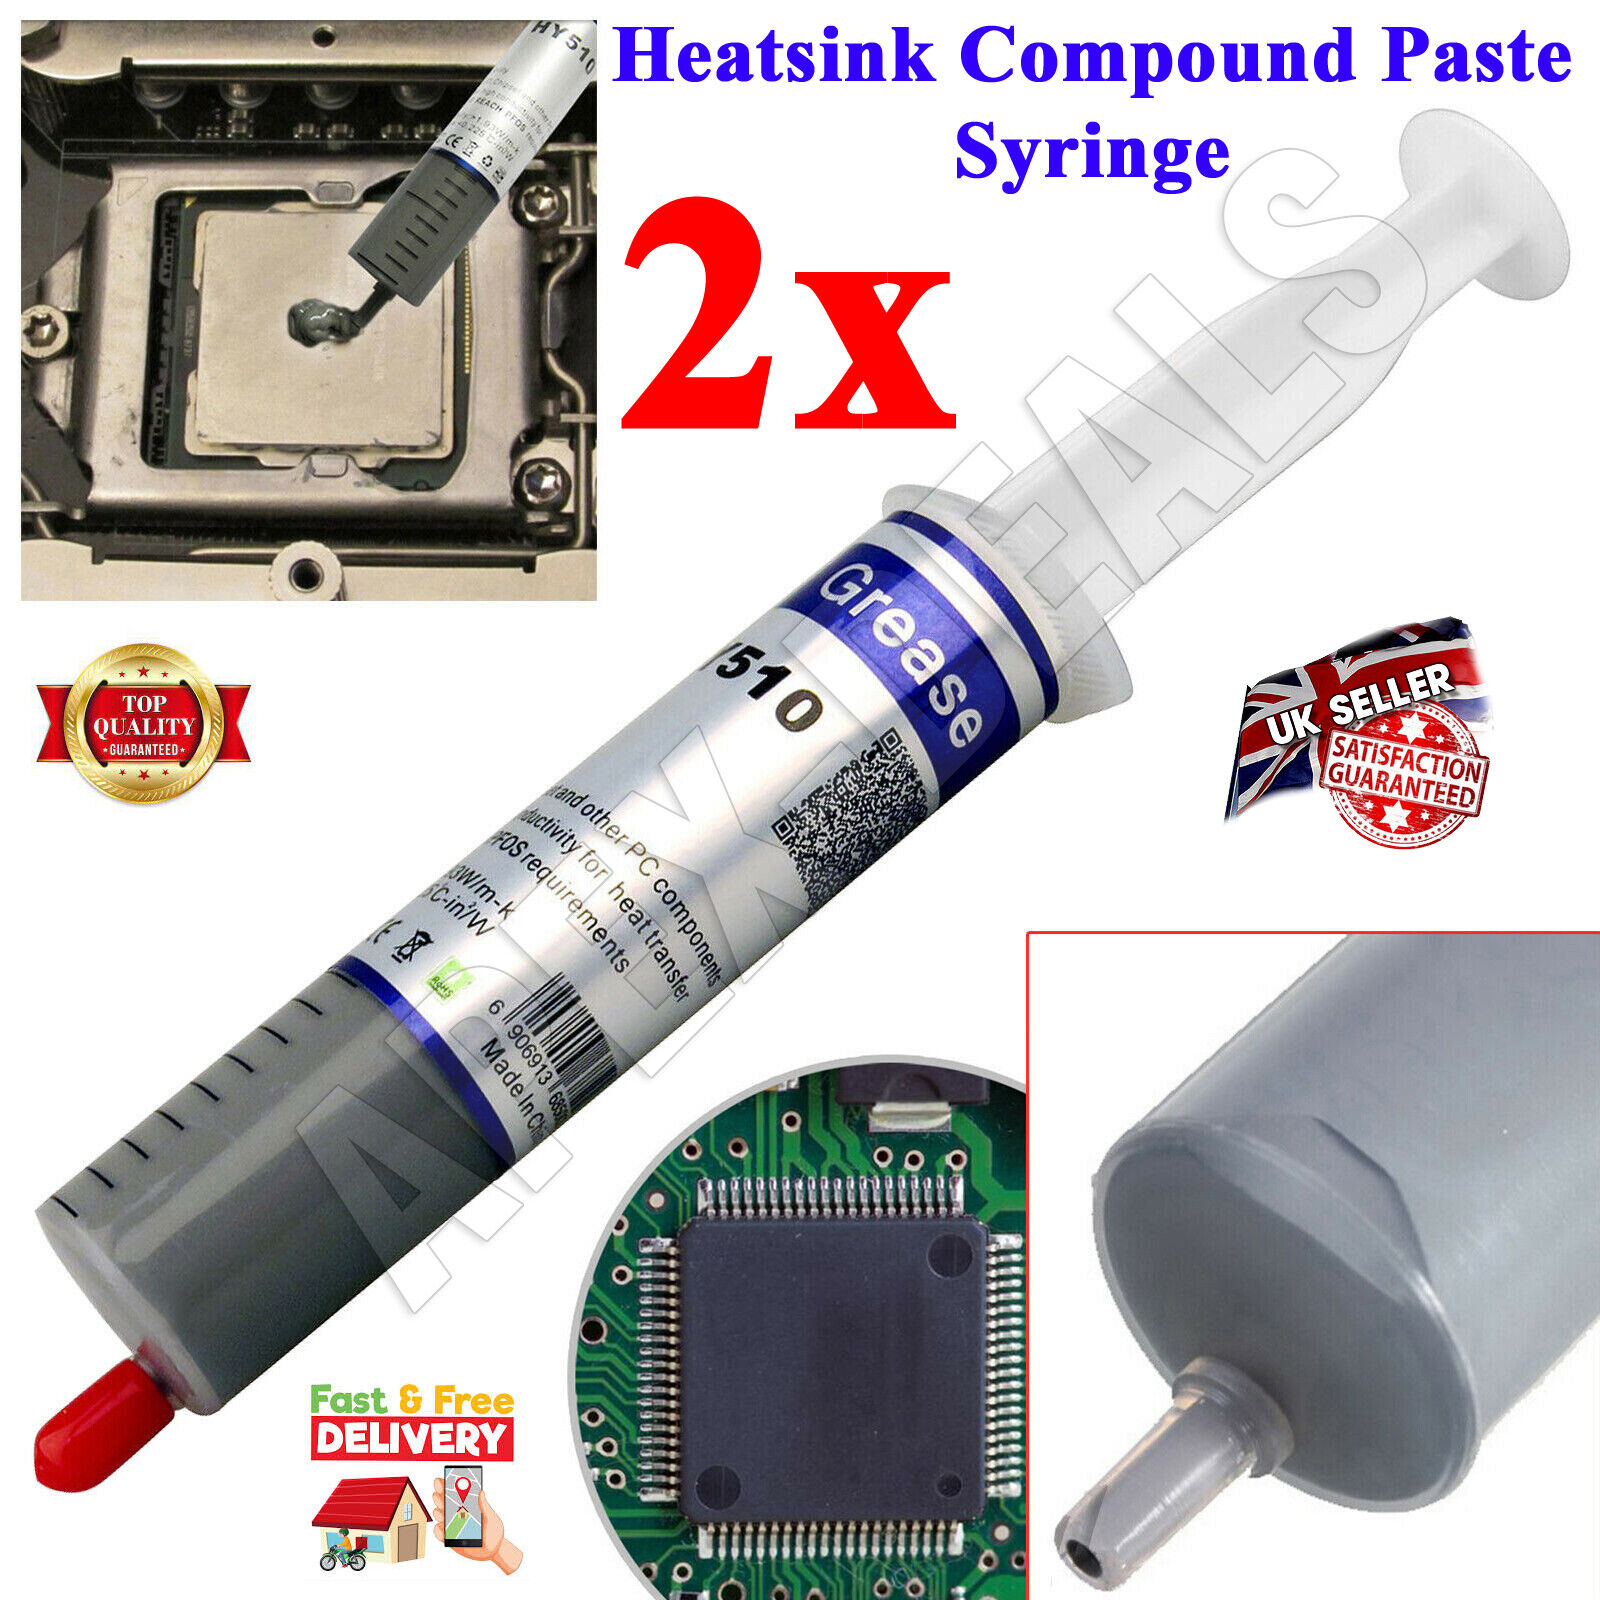 2 x Grey Thermal Grease Heatsink Silicone Compound Paste Syringe Computer PC CPU